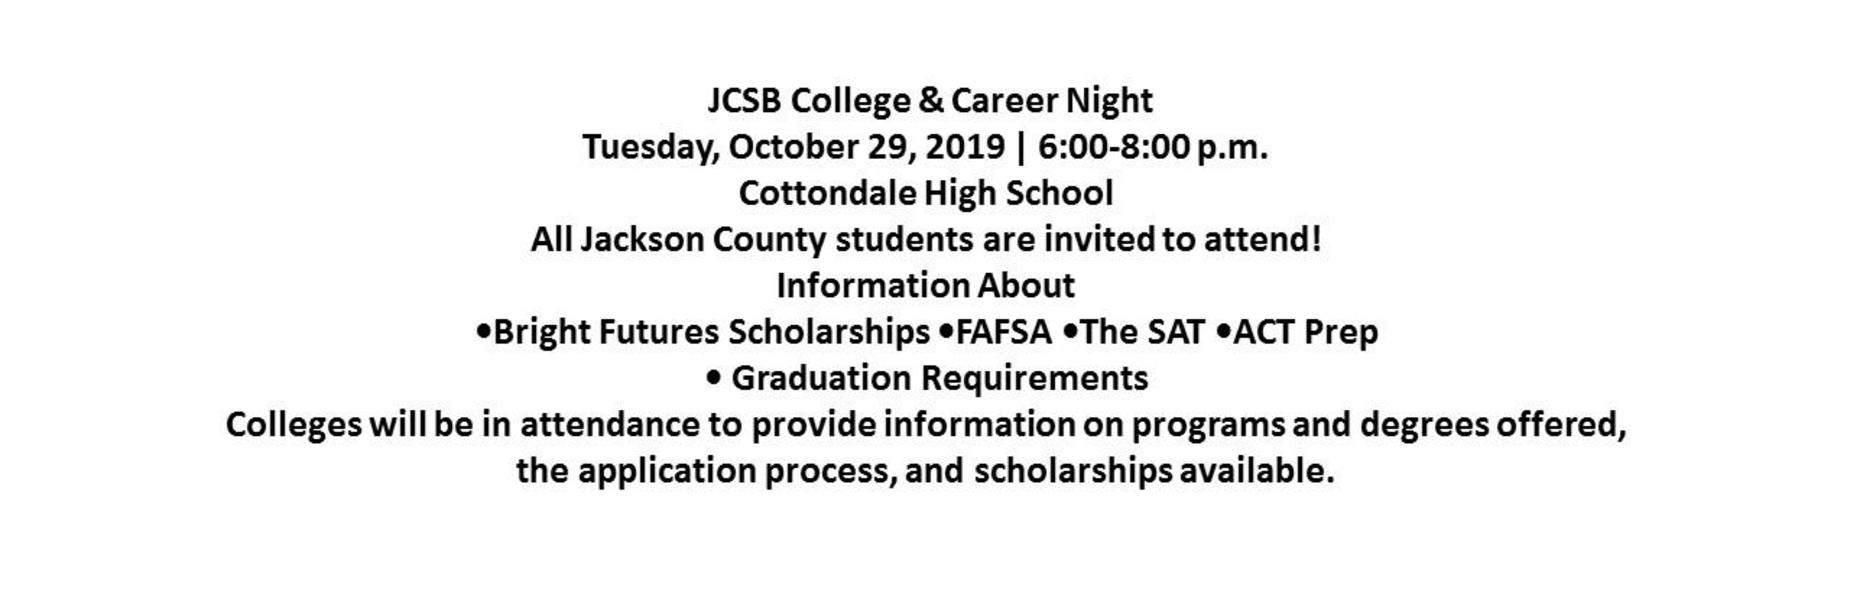 College Night Announcement